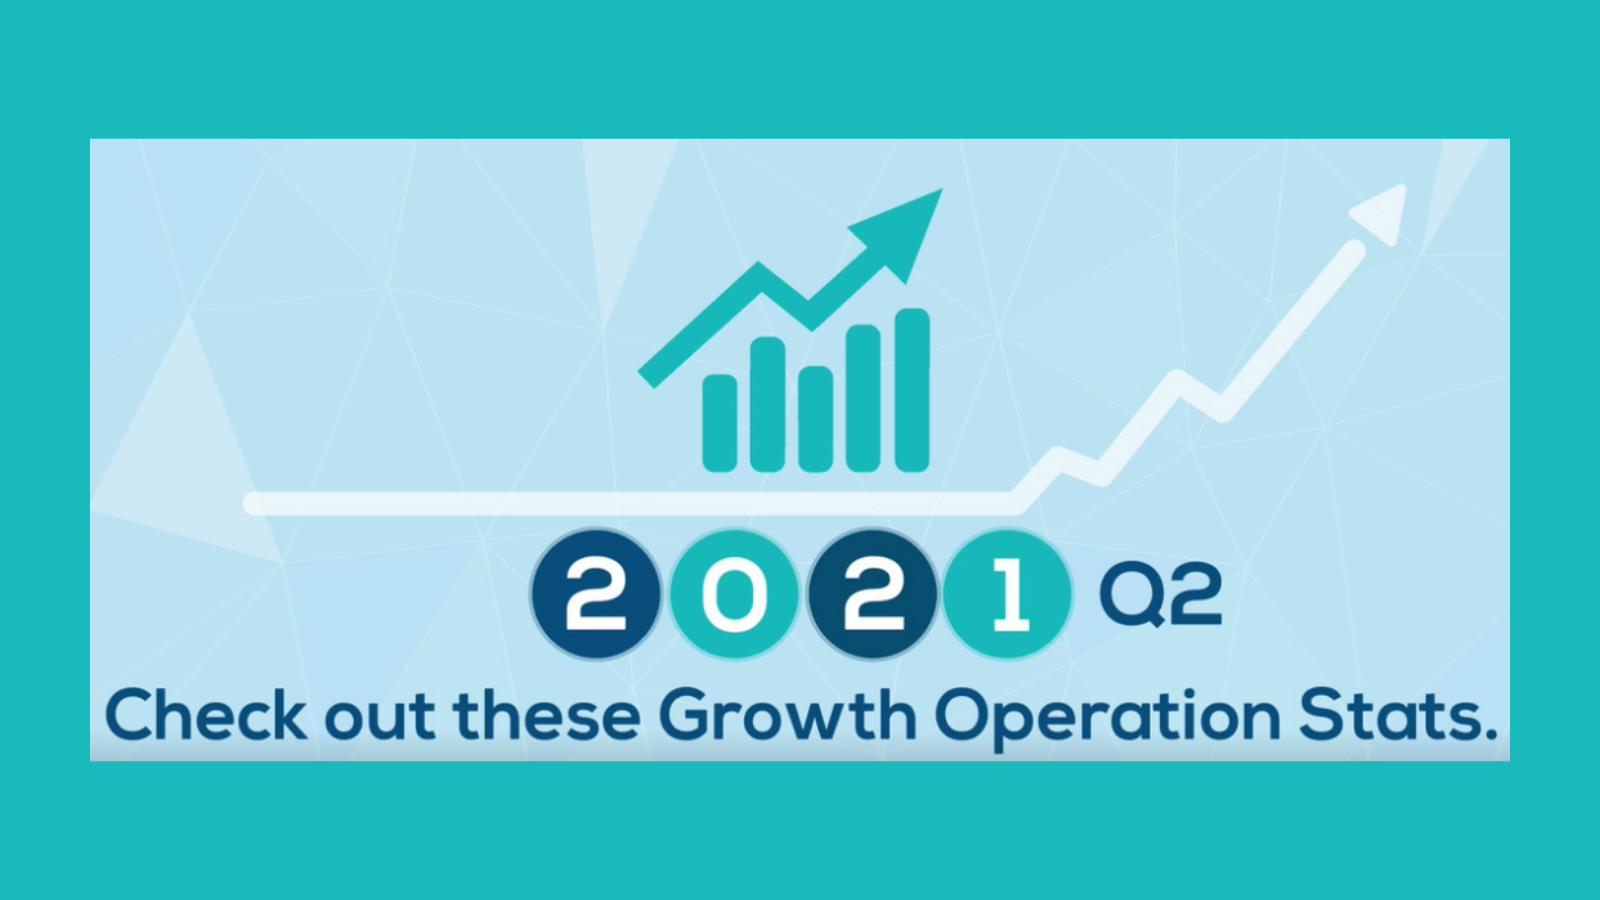 Rohling Growth Advisors, Key Stats for Q2 2021